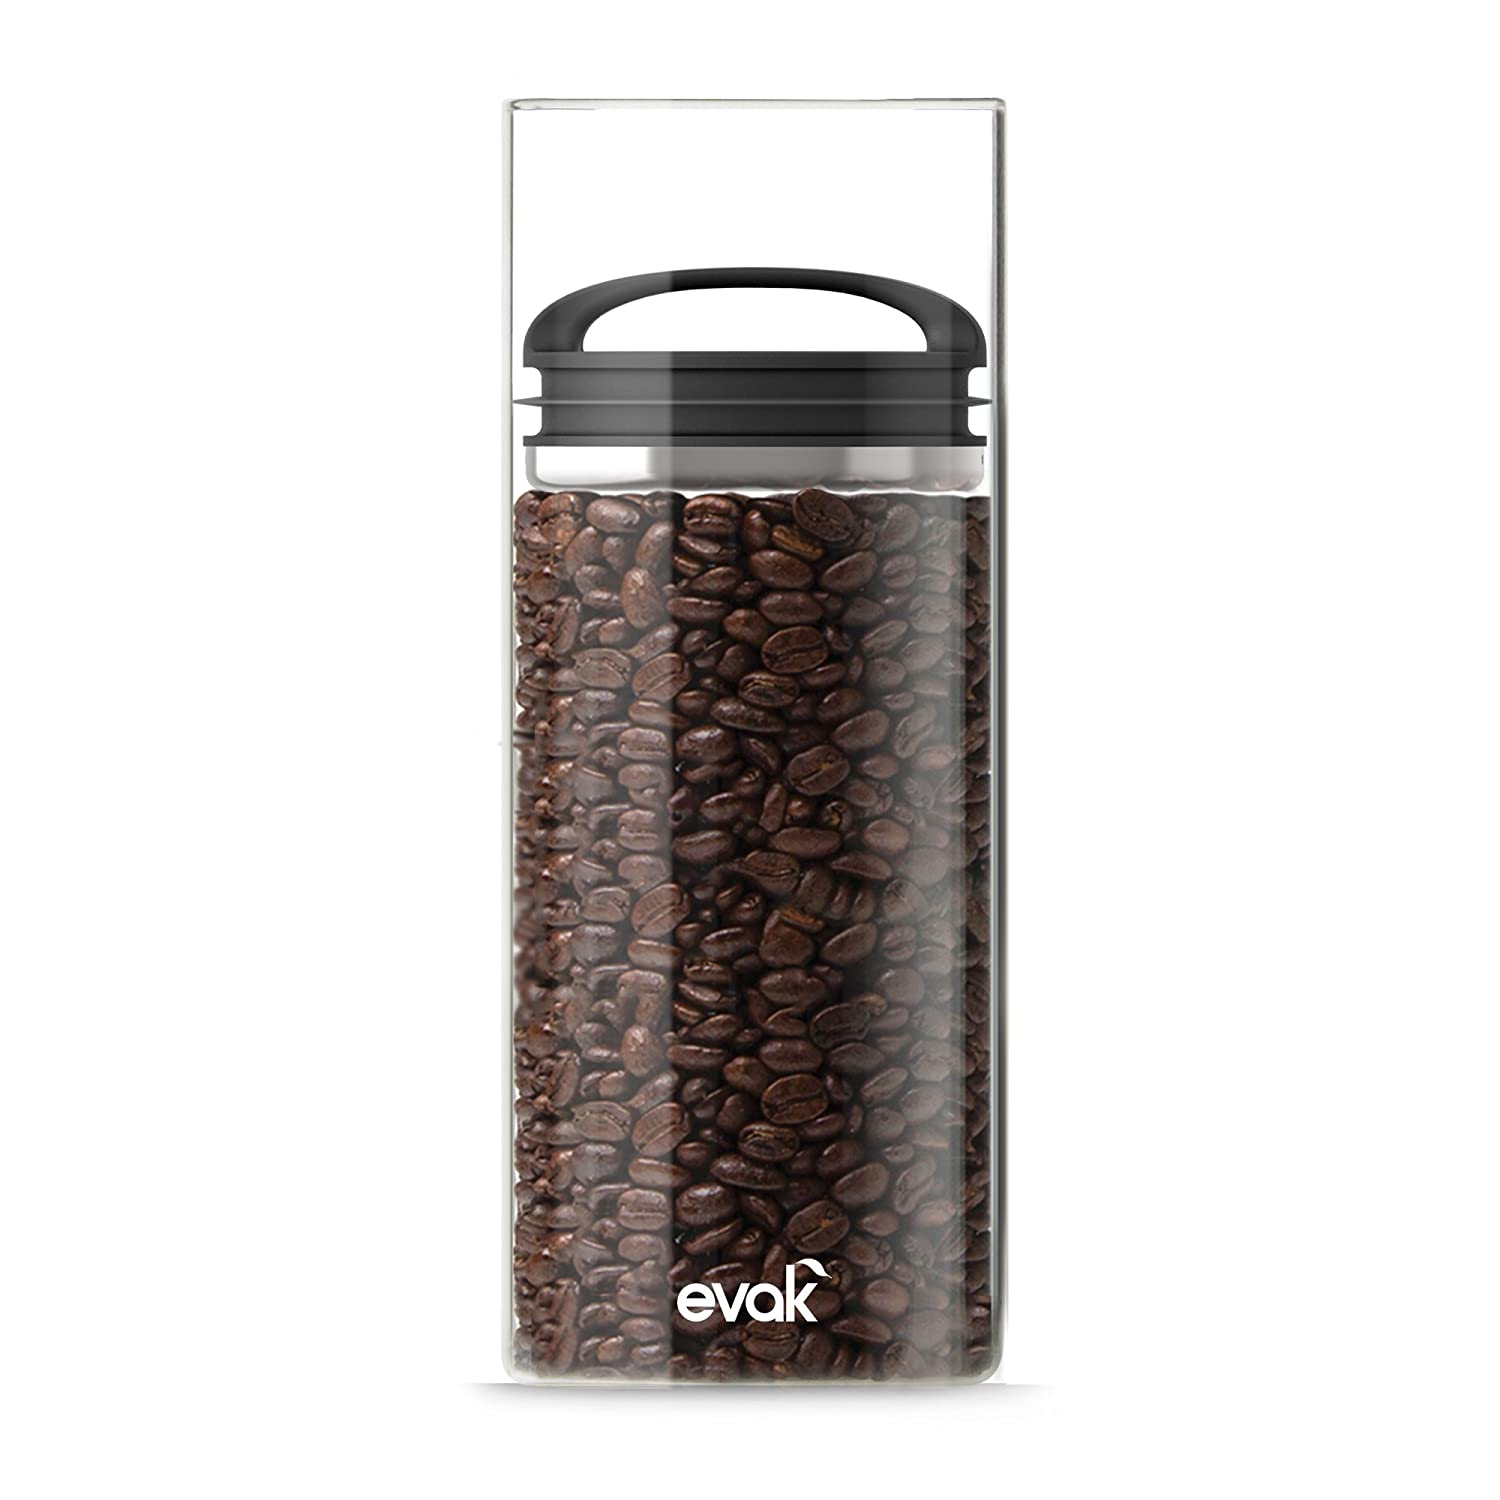 Best PREMIUM Airtight Storage Container for Coffee Beans, Tea and Dry Goods - EVAK - Innovation that Works by Prepara, Glass and Stainless, Compact Soft Touch Black Handle, Large